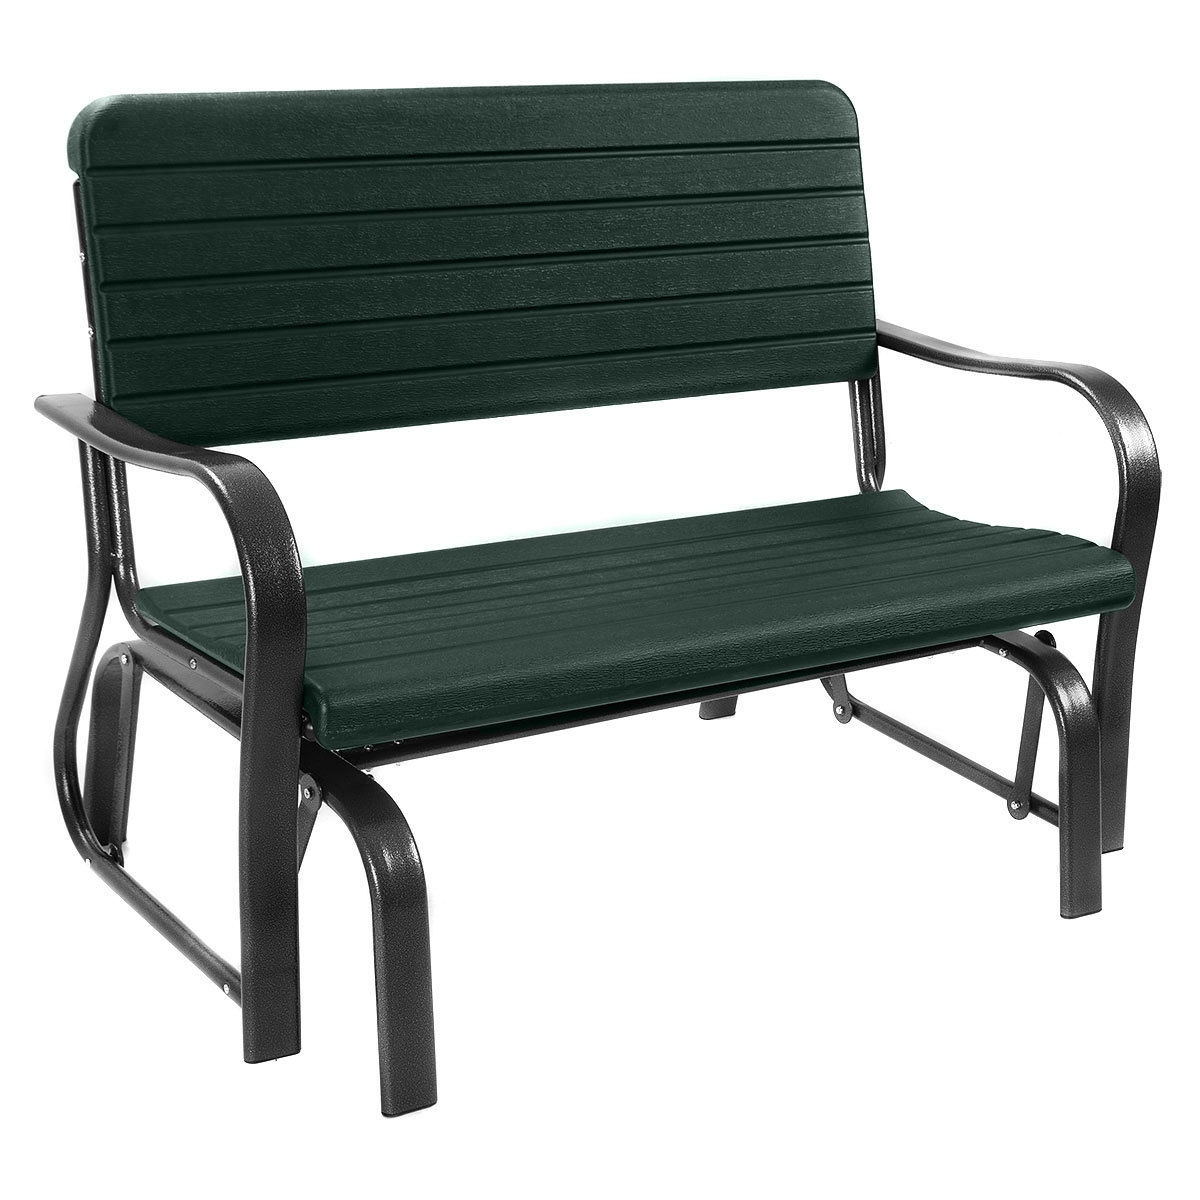 Best And Newest Rocking Love Seats Glider Swing Benches With Sturdy Frame Pertaining To Outdoor Patio Steel Swing Bench Loveseat (Gallery 24 of 30)